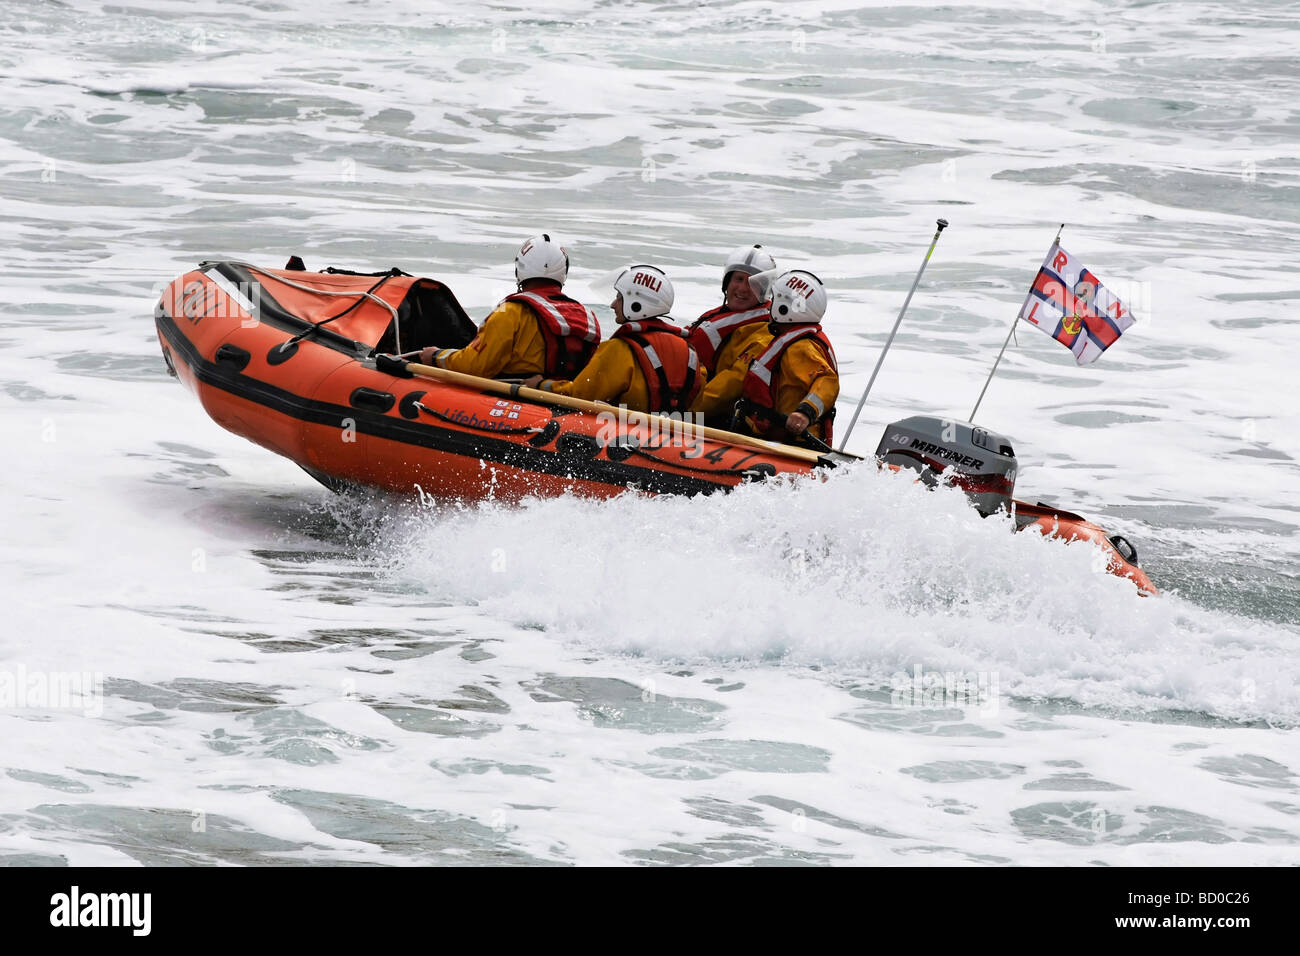 RNLI ILB D 547 crashing through the waves whilst practicing rescue and recovery drills - Stock Image